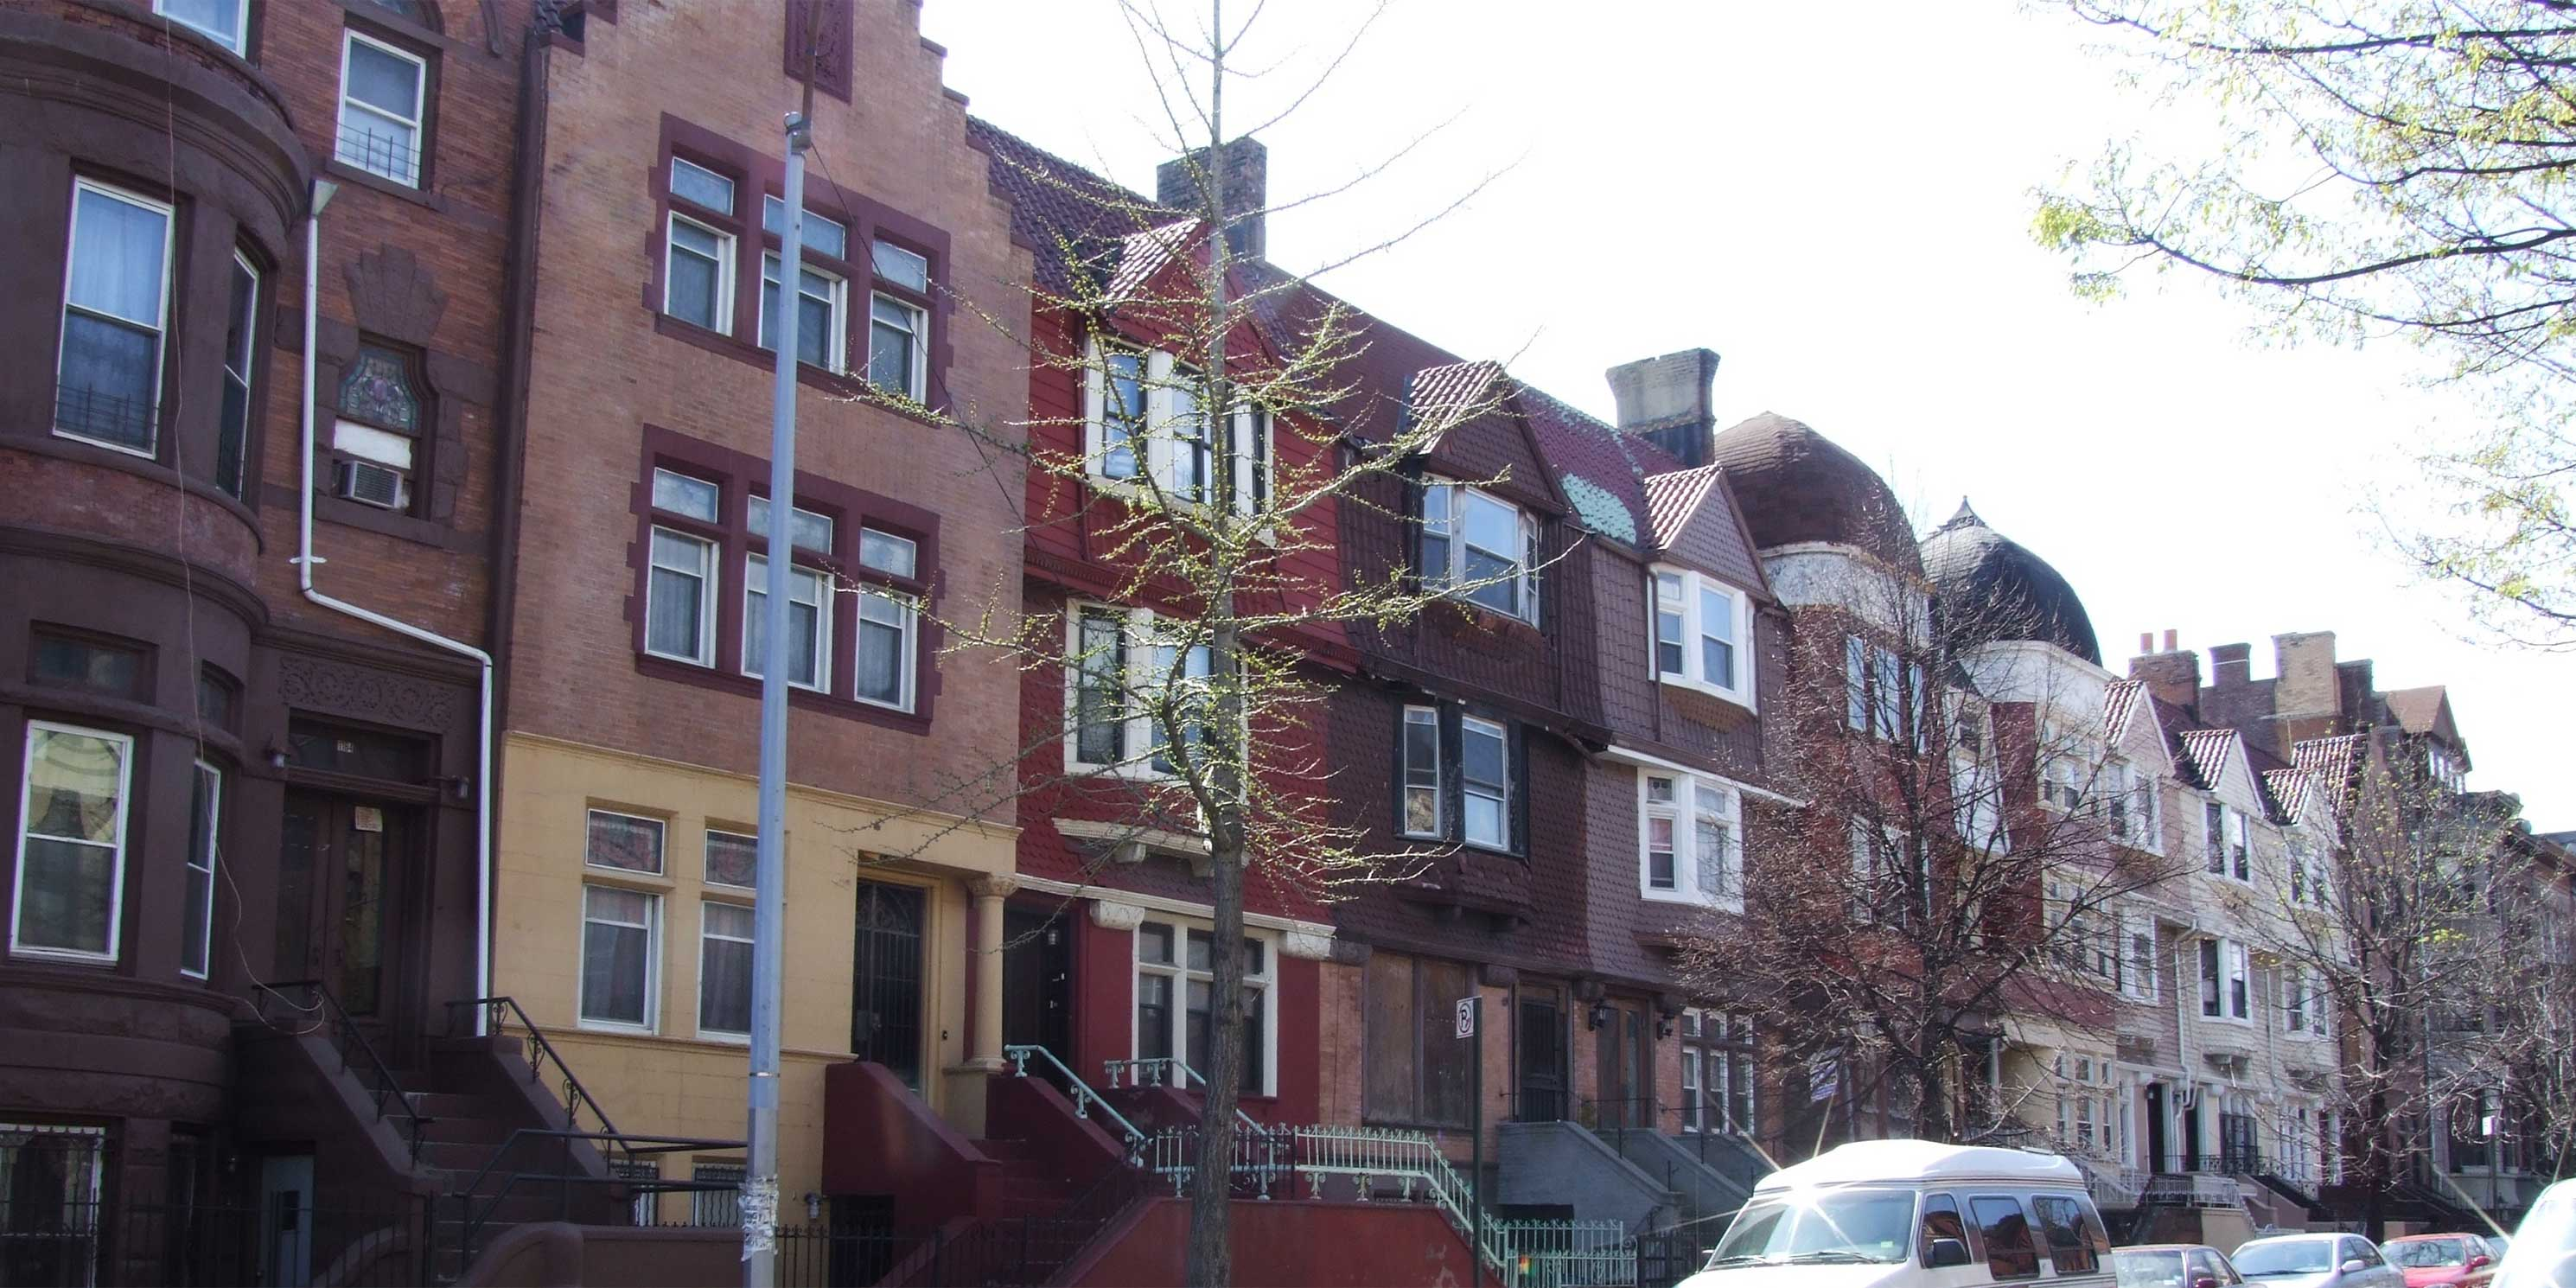 rowhouses in Crown Heights, Brooklyn